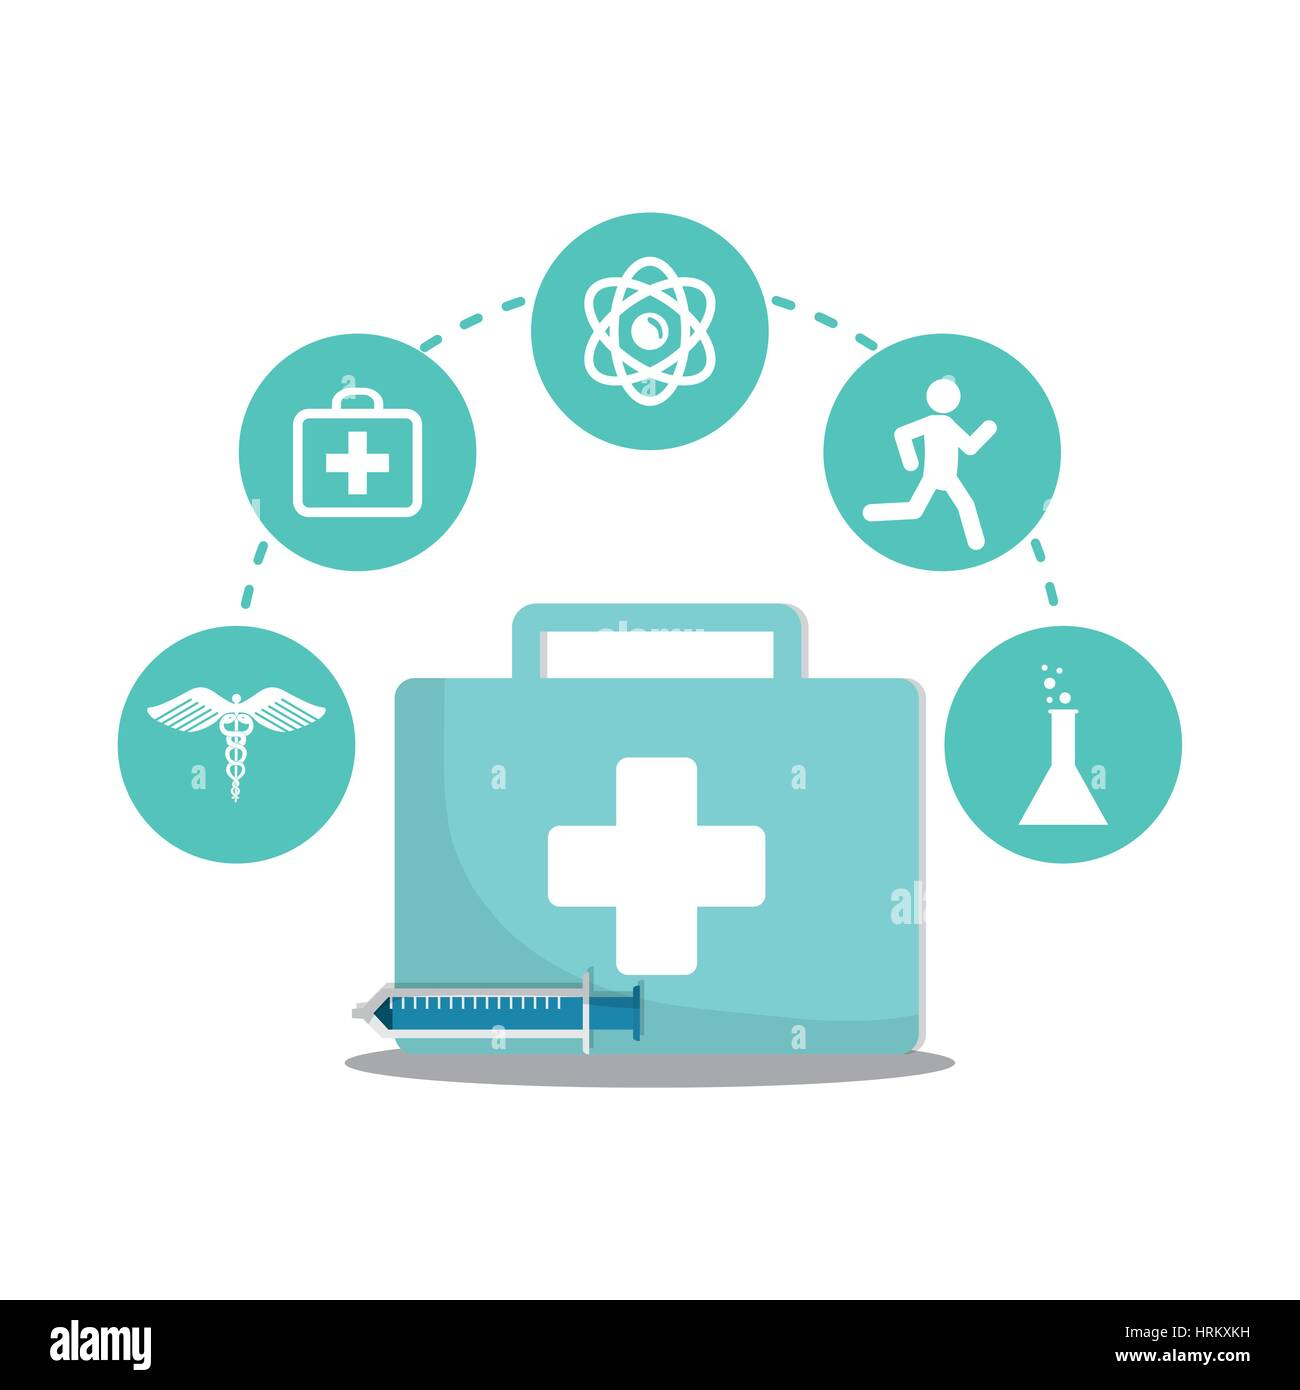 First Aid Symbol Stock Photos & First Aid Symbol Stock Images - Alamy